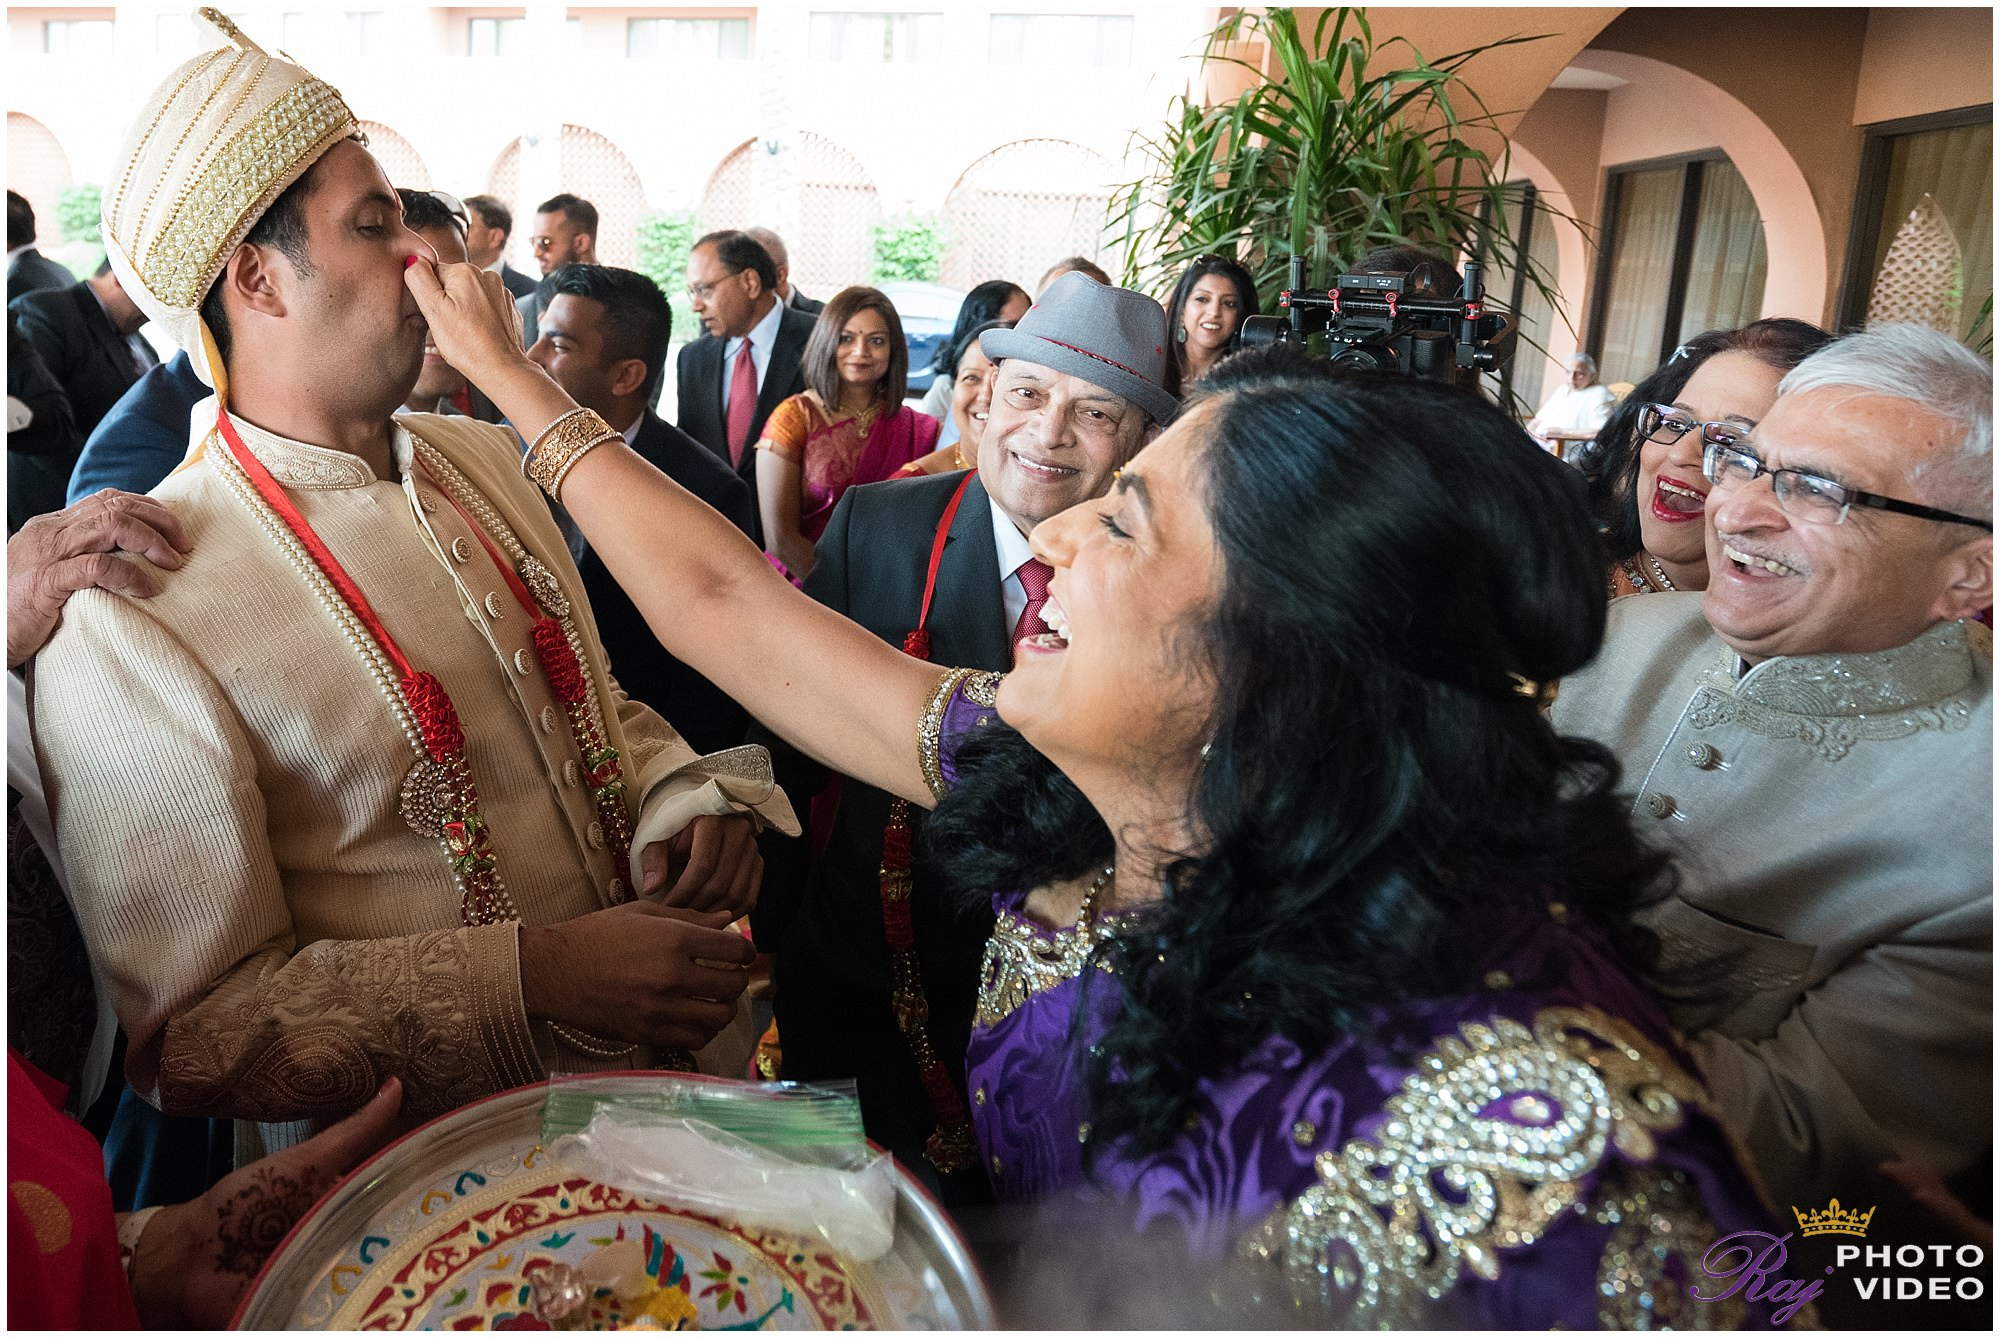 Scottsdale_Marriott_at_McDowell_Mountains_Arizona_Indian_Wedding_Sapna_Shyam-44.jpg